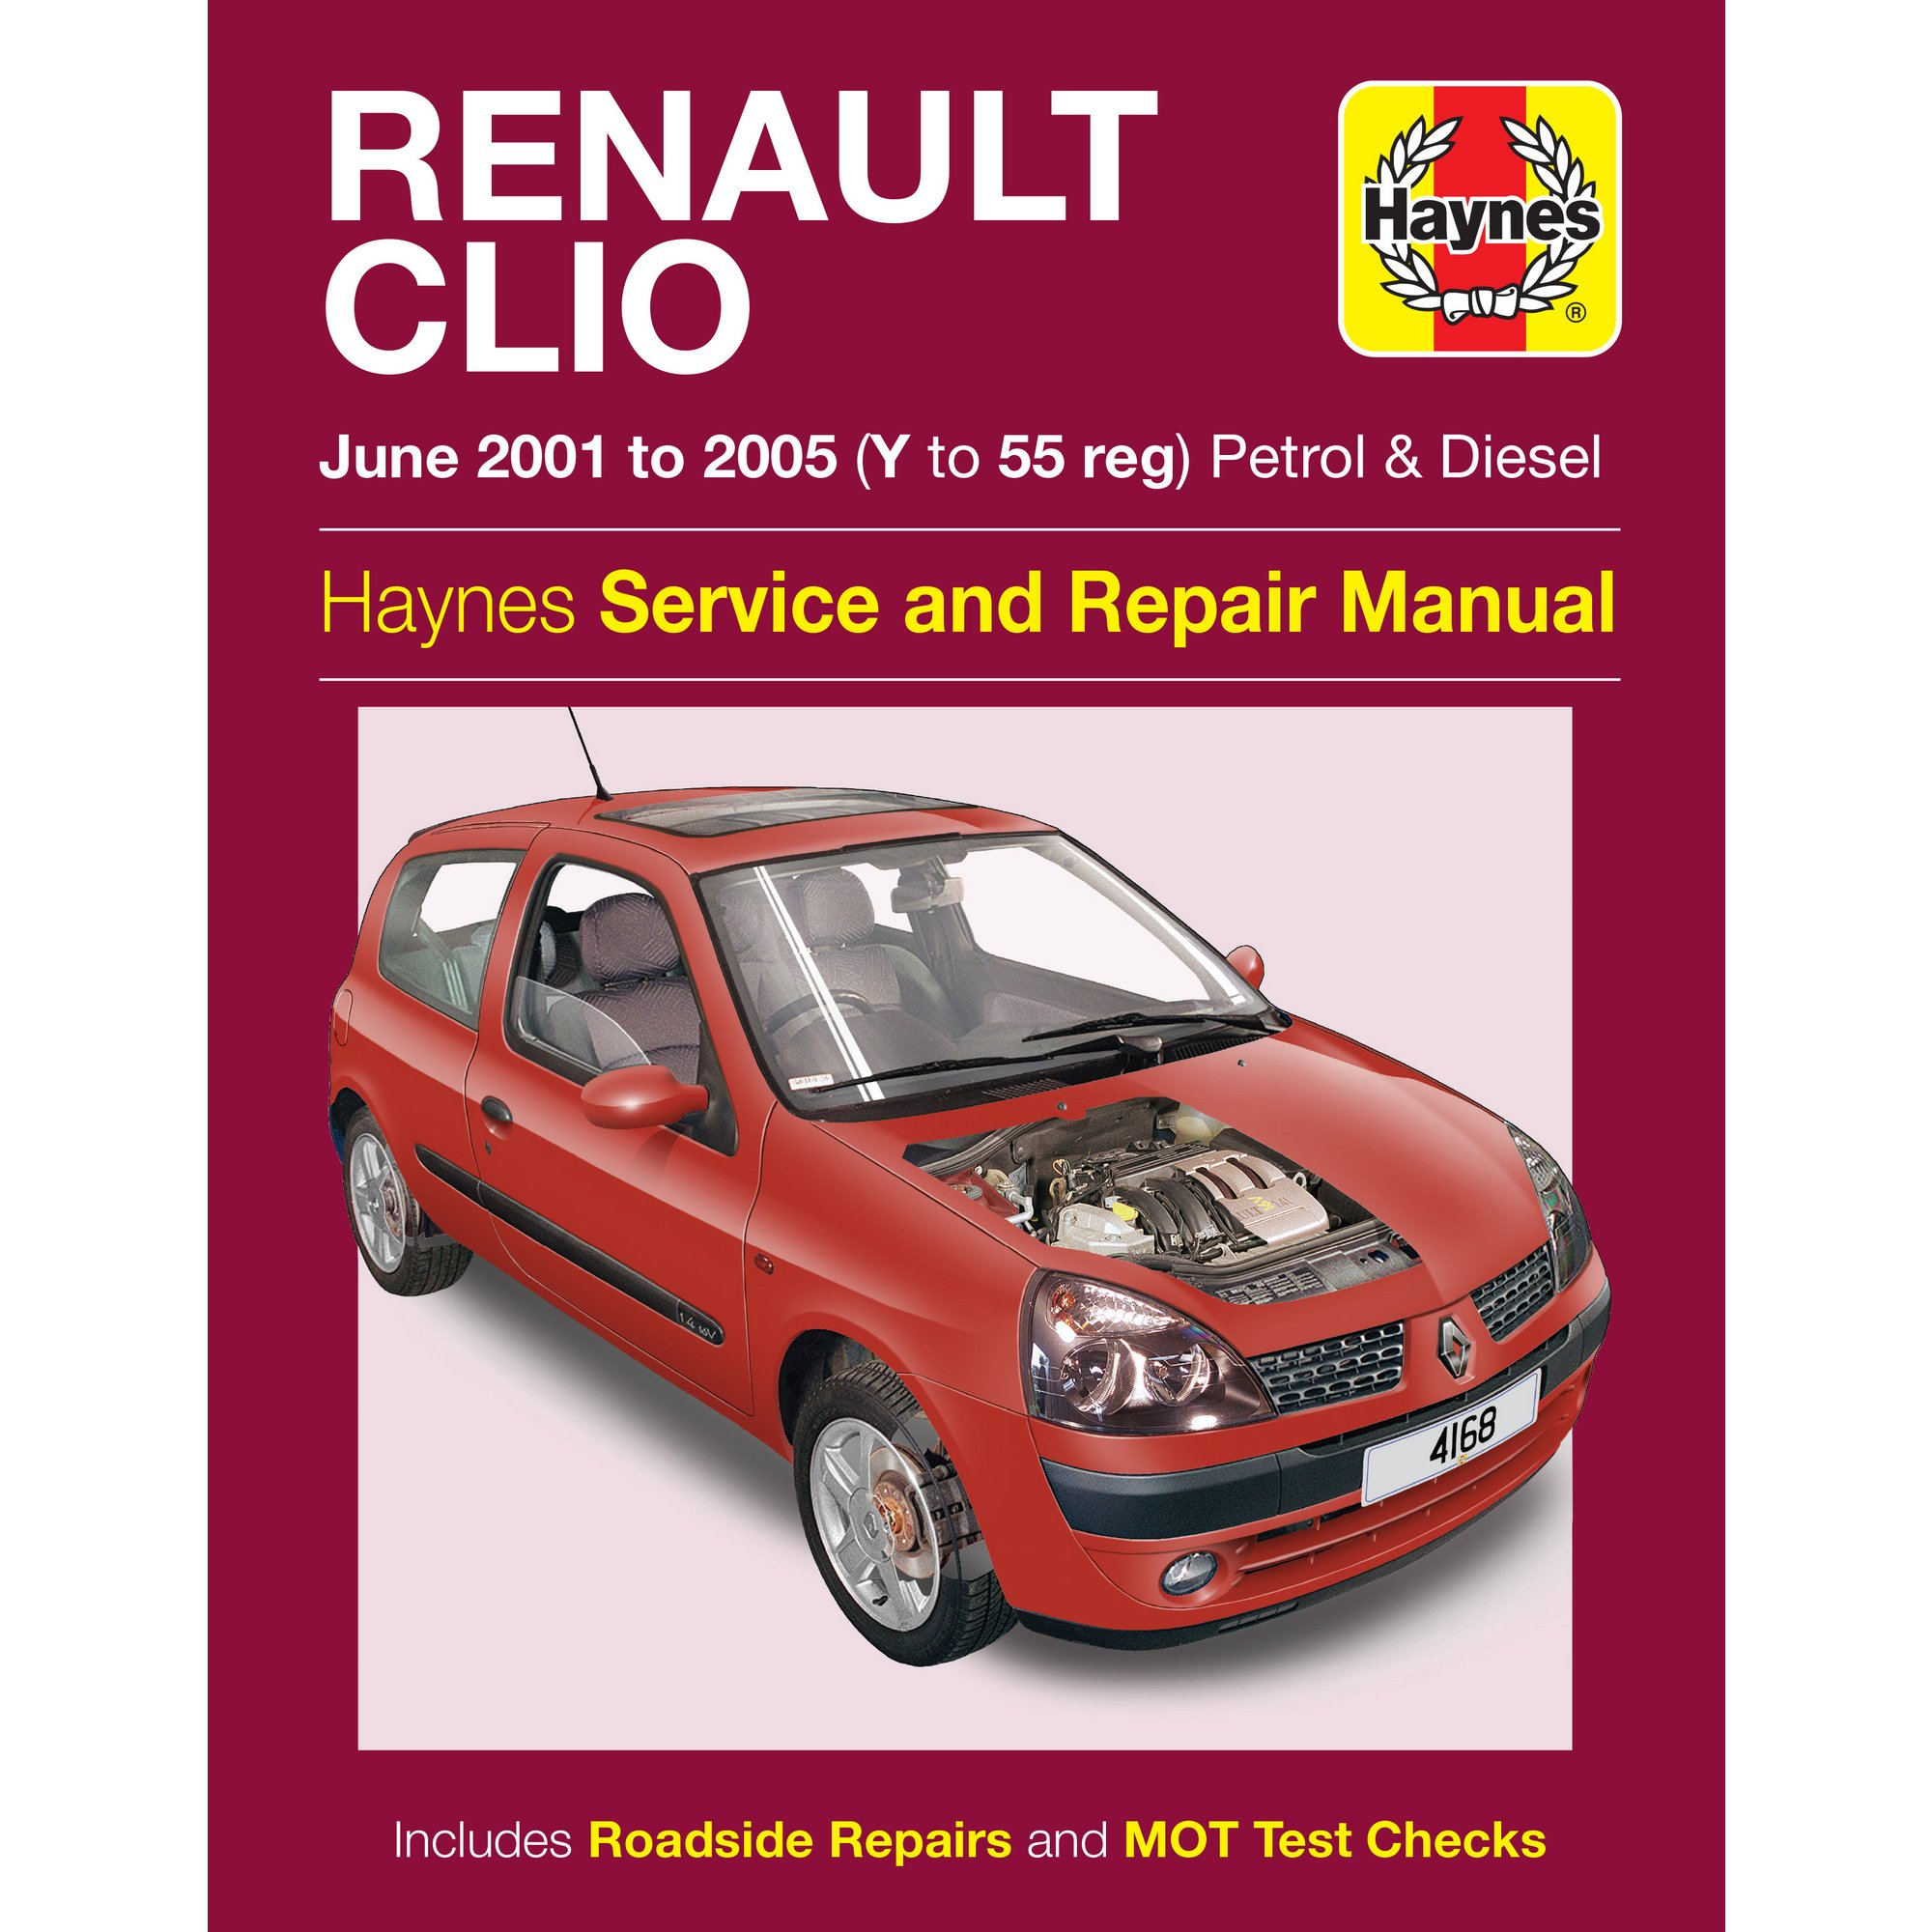 Download Free User Manual Renault Clio 2001